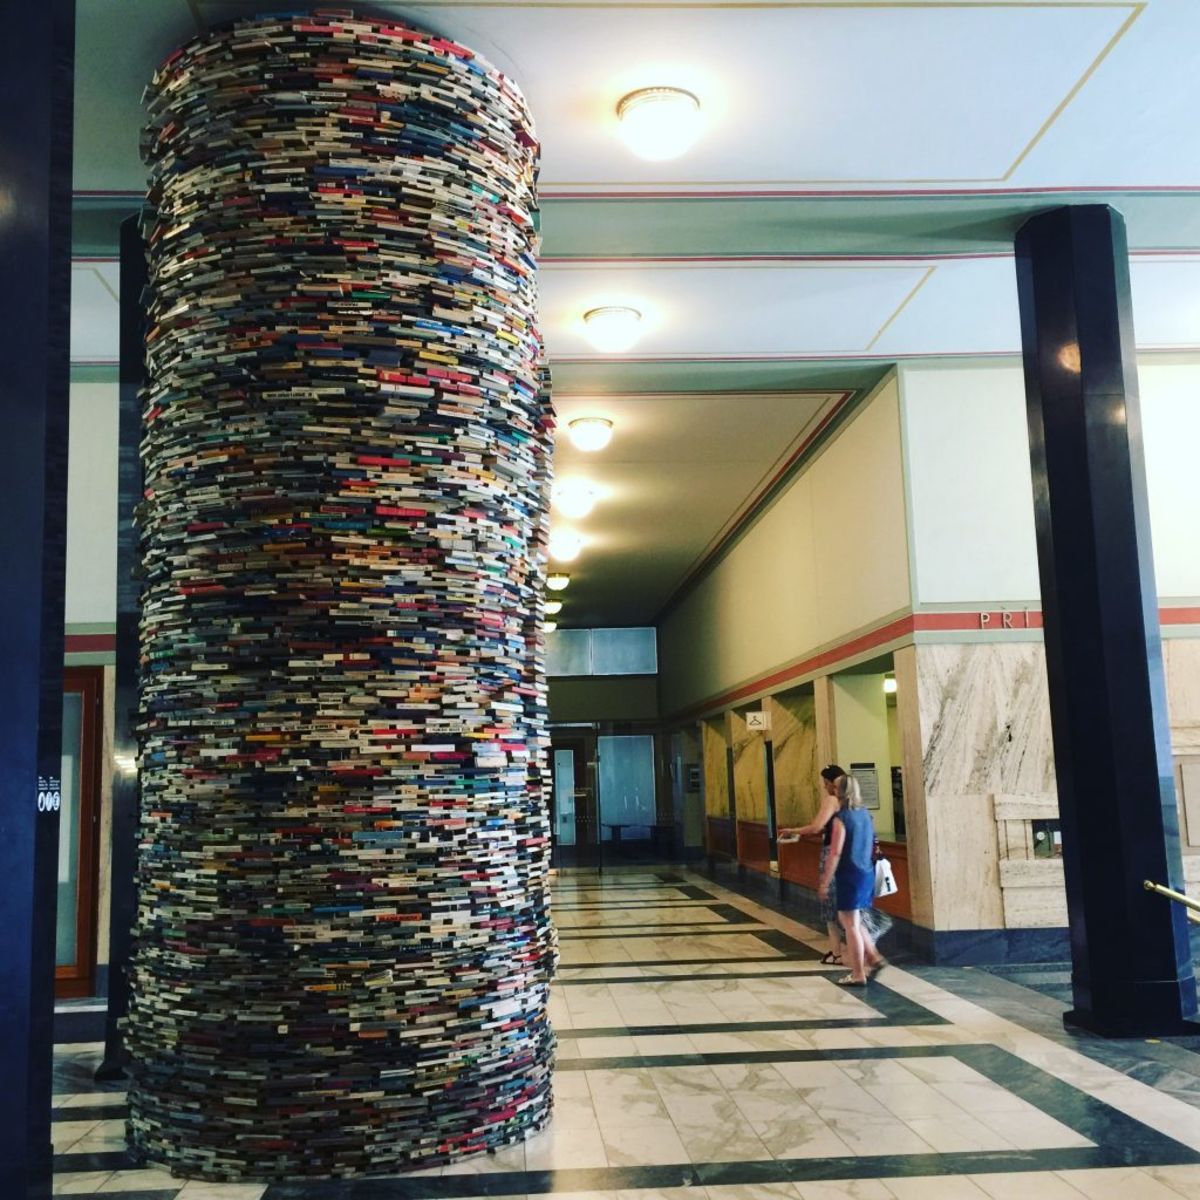 colorful tower made of books